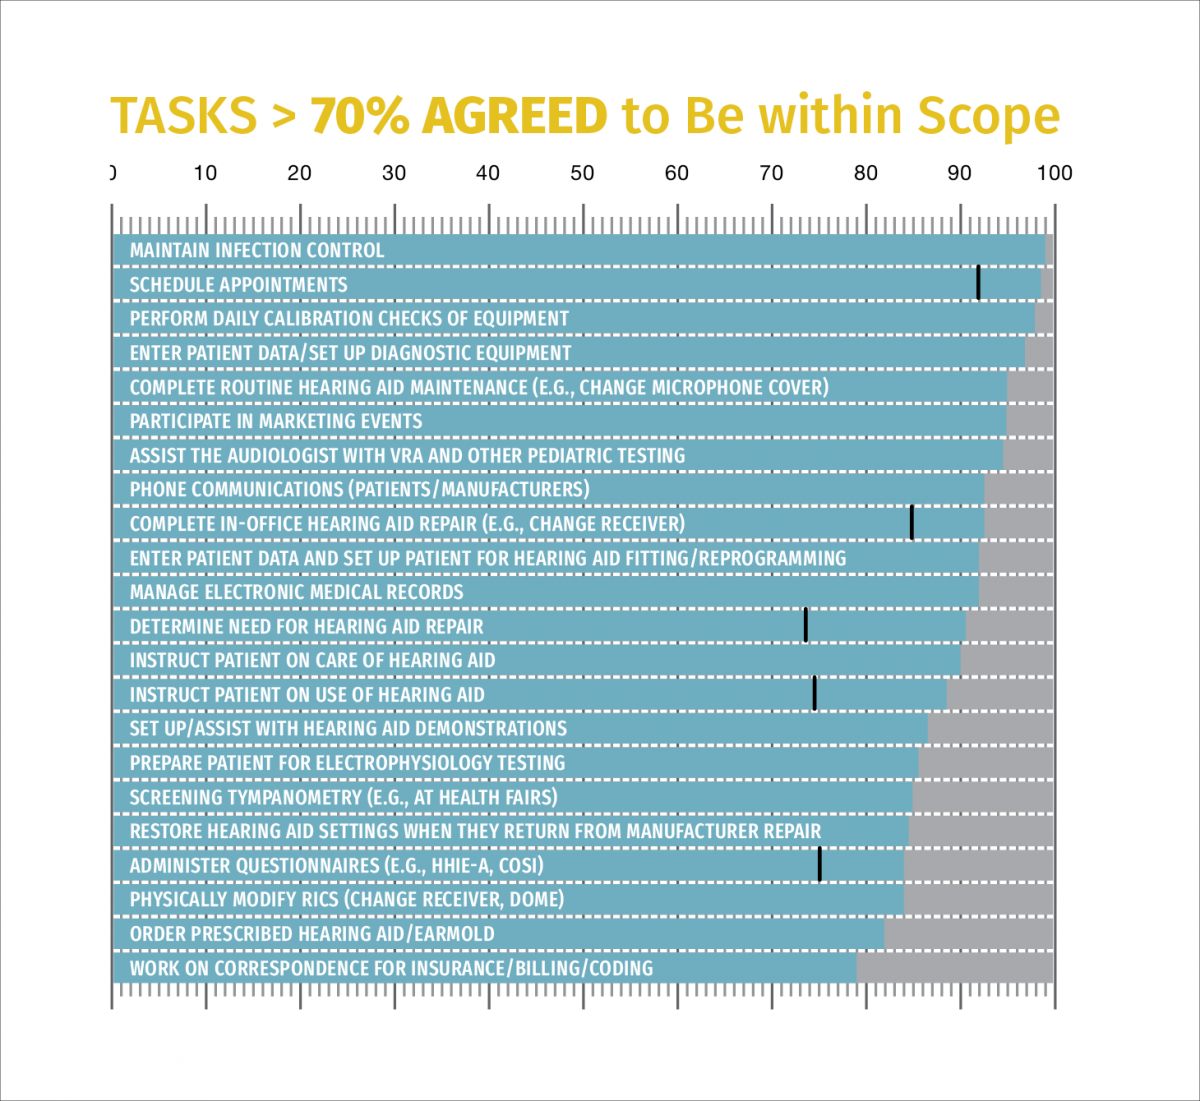 FIGURE 1. Percentage of respondents who agree a given task is appropriate to be within the scope of practice of an audiology assistant; only tasks where greater than 70 percent agreed are shown.